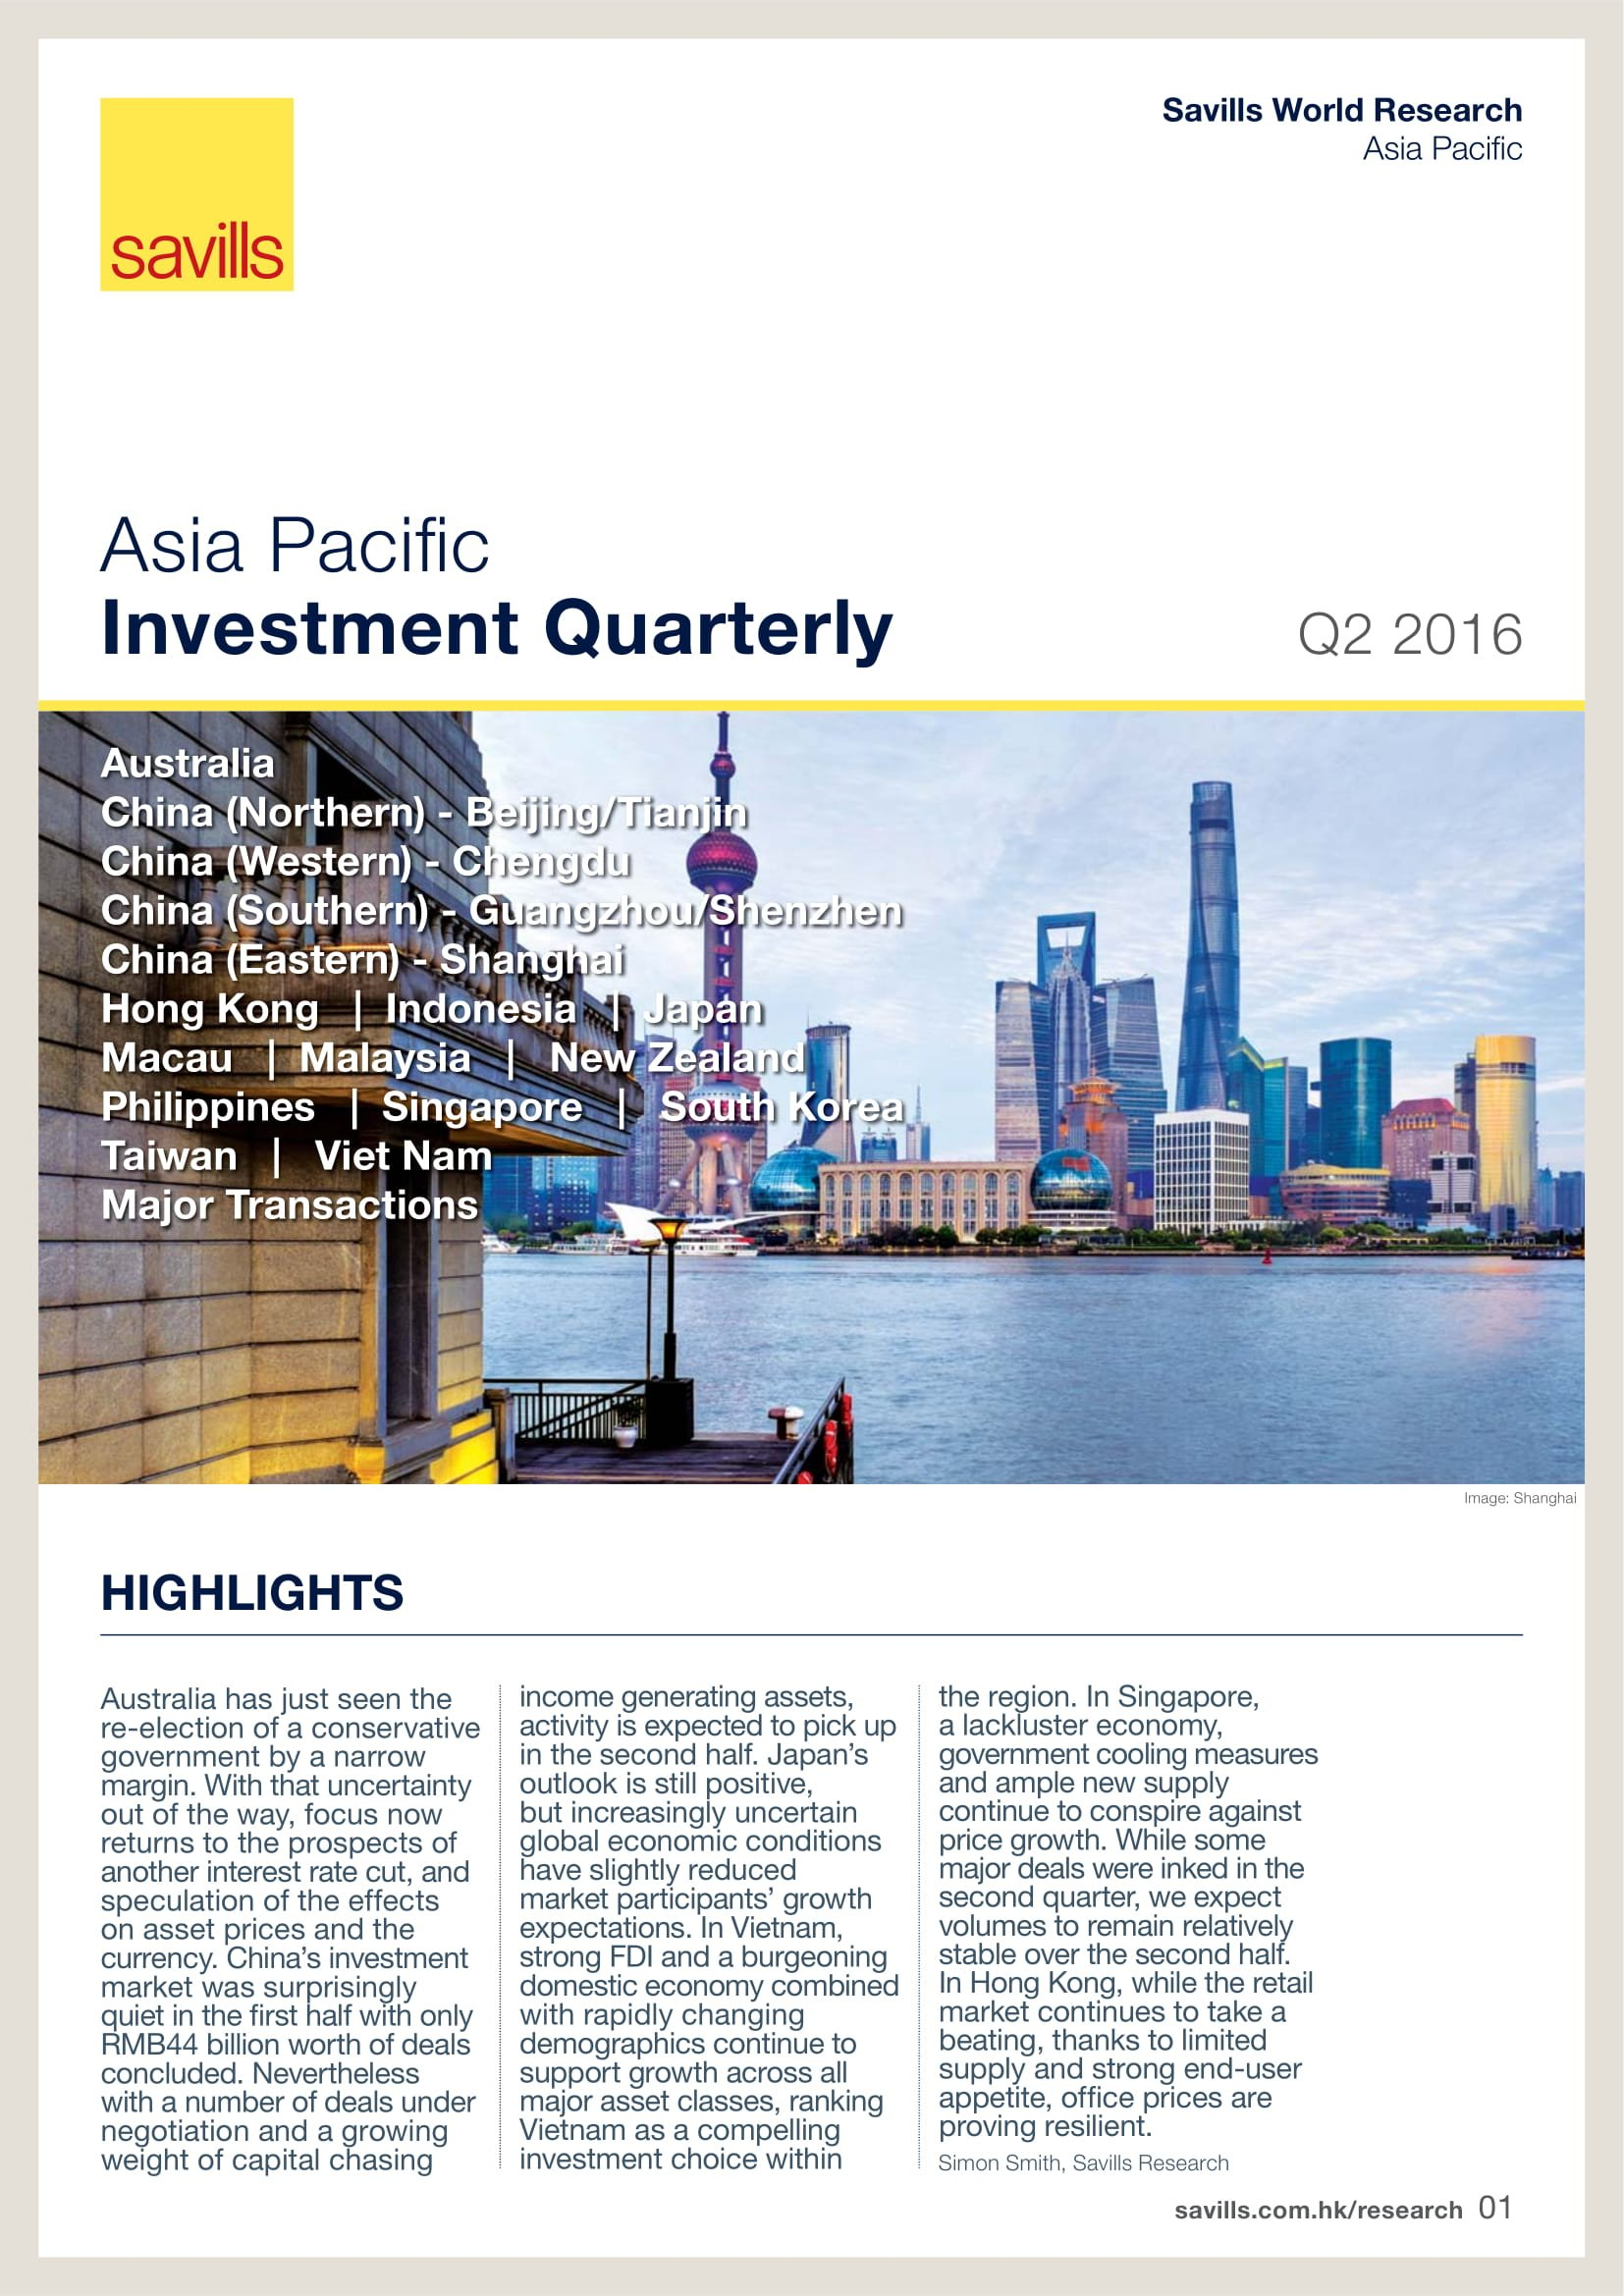 Asia Pacific Investment Quarterly Q2 2016